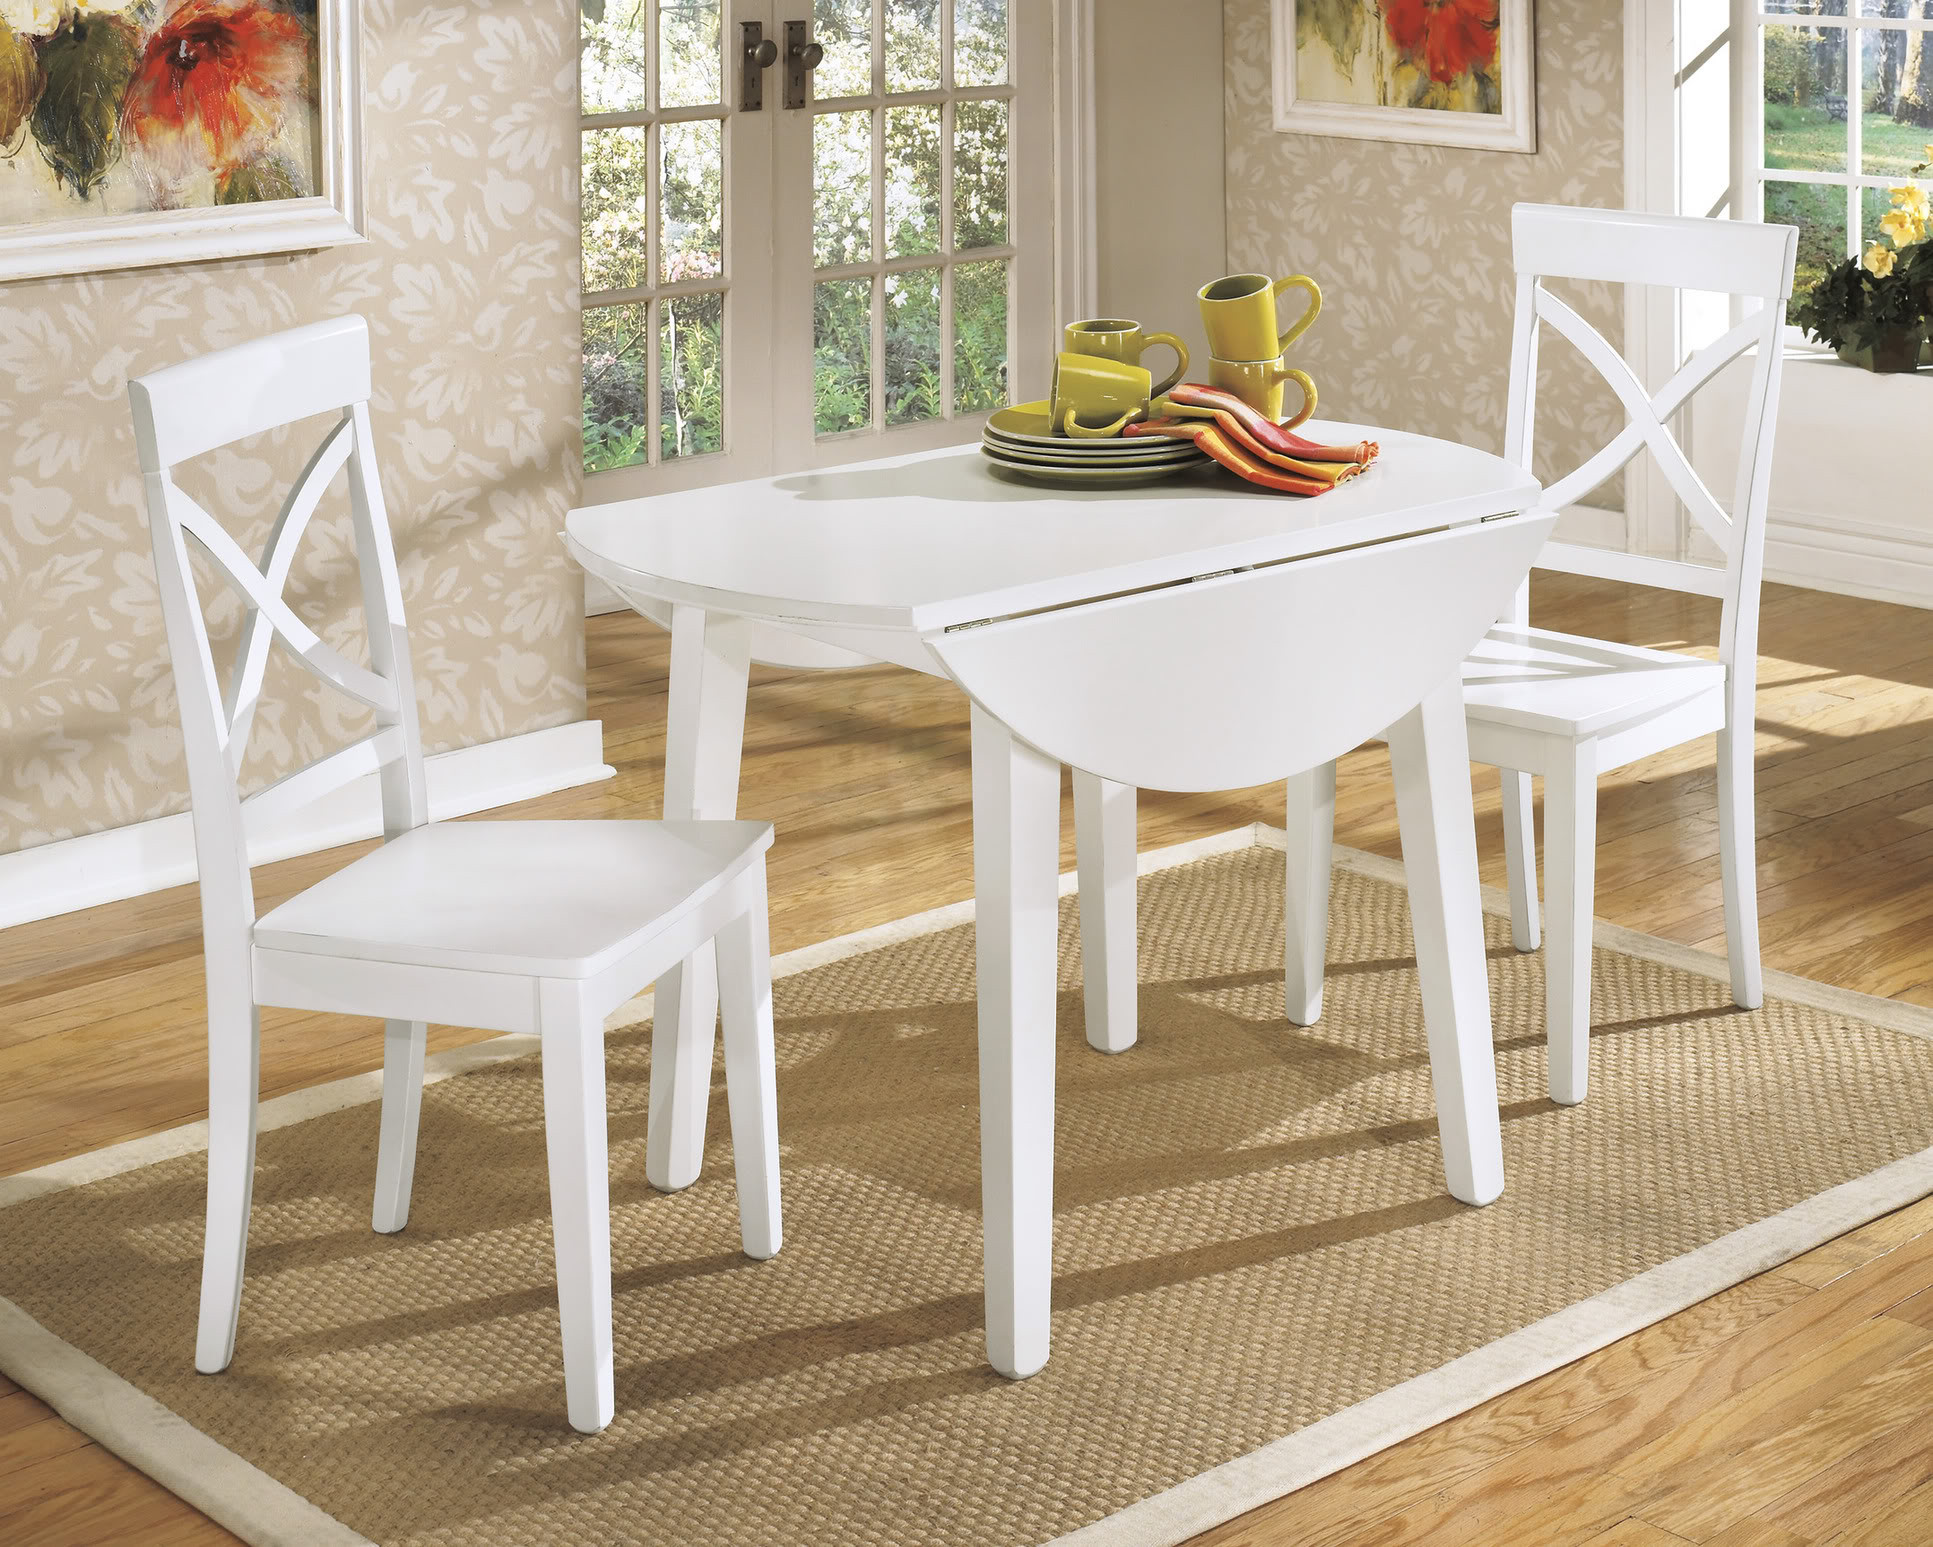 Round White Kitchen Table Sets  White Round Kitchen Table and Chairs Design – HomesFeed